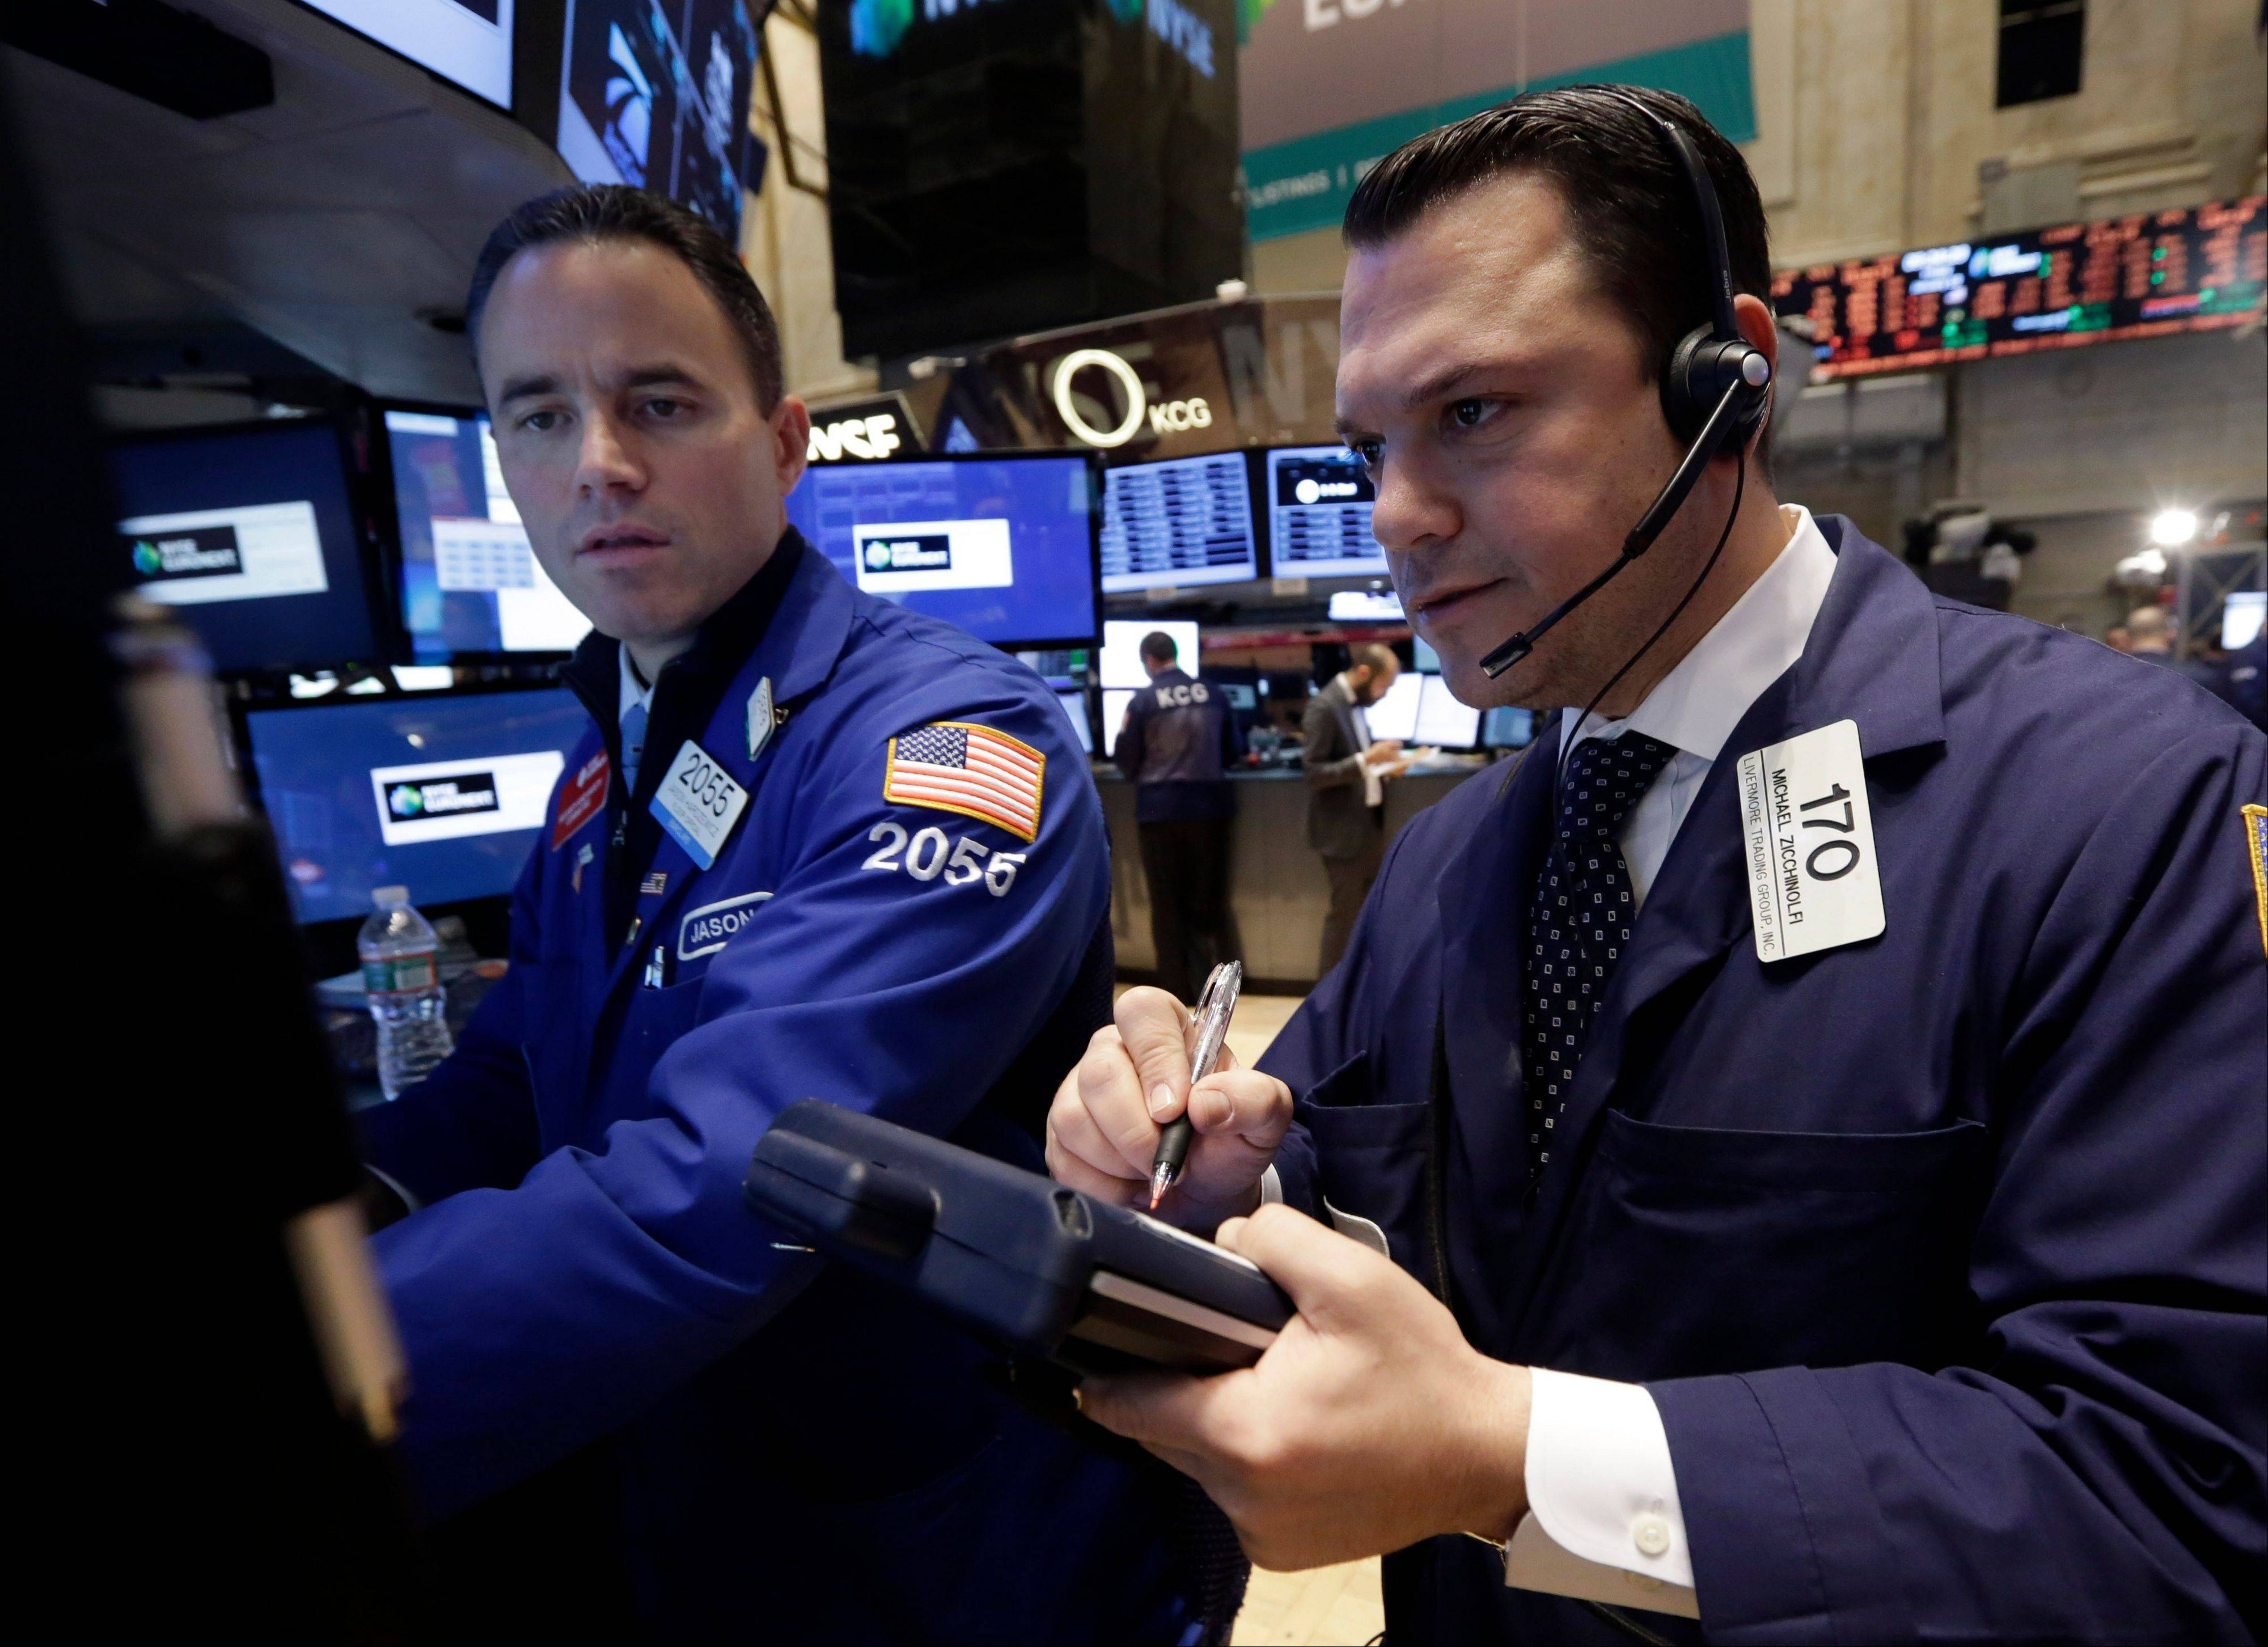 U.S. stocks fell Monday, sending the Standard & Poor�s 500 Index toward its biggest loss in two months, amid concern over valuations after benchmark indexes rallied to all-time highs in 2013.